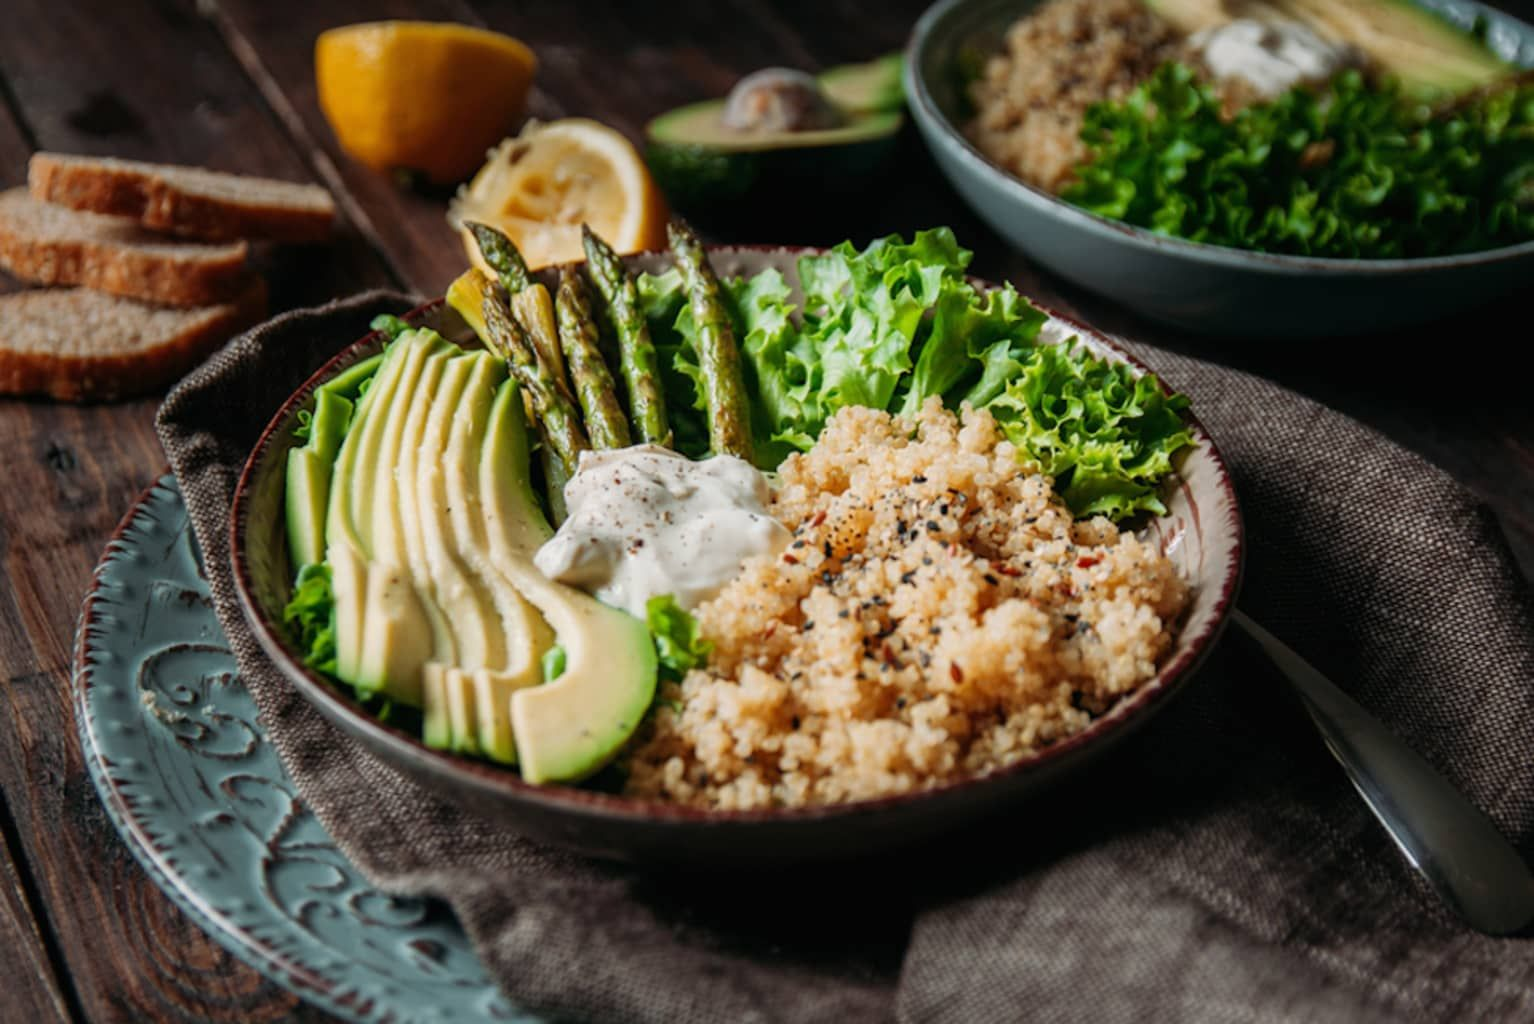 8 Healthy Food Trends You Need To Try A Nutritionist